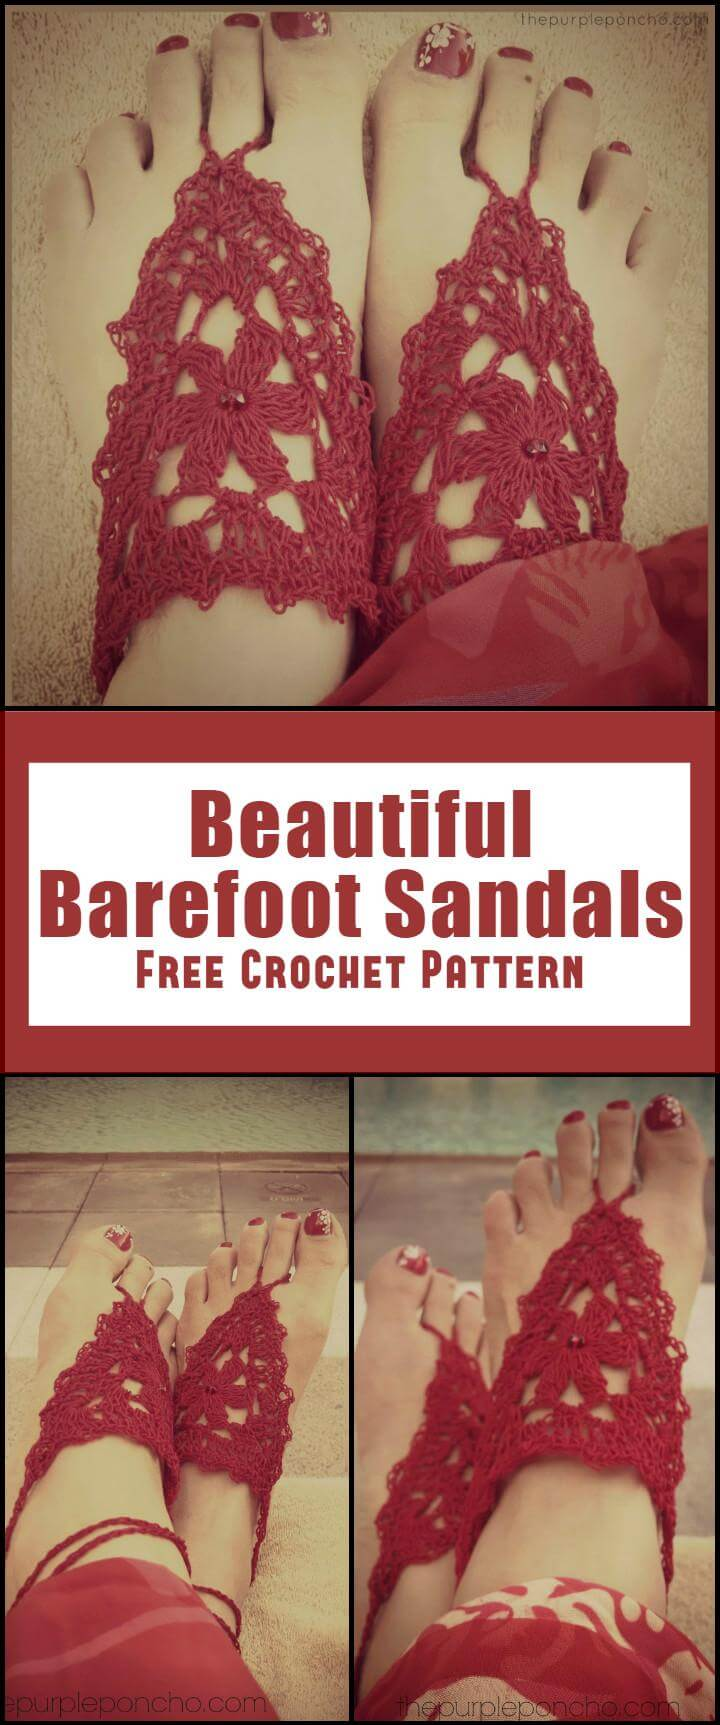 Beautiful Barefoot Sandals Free Crochet Pattern